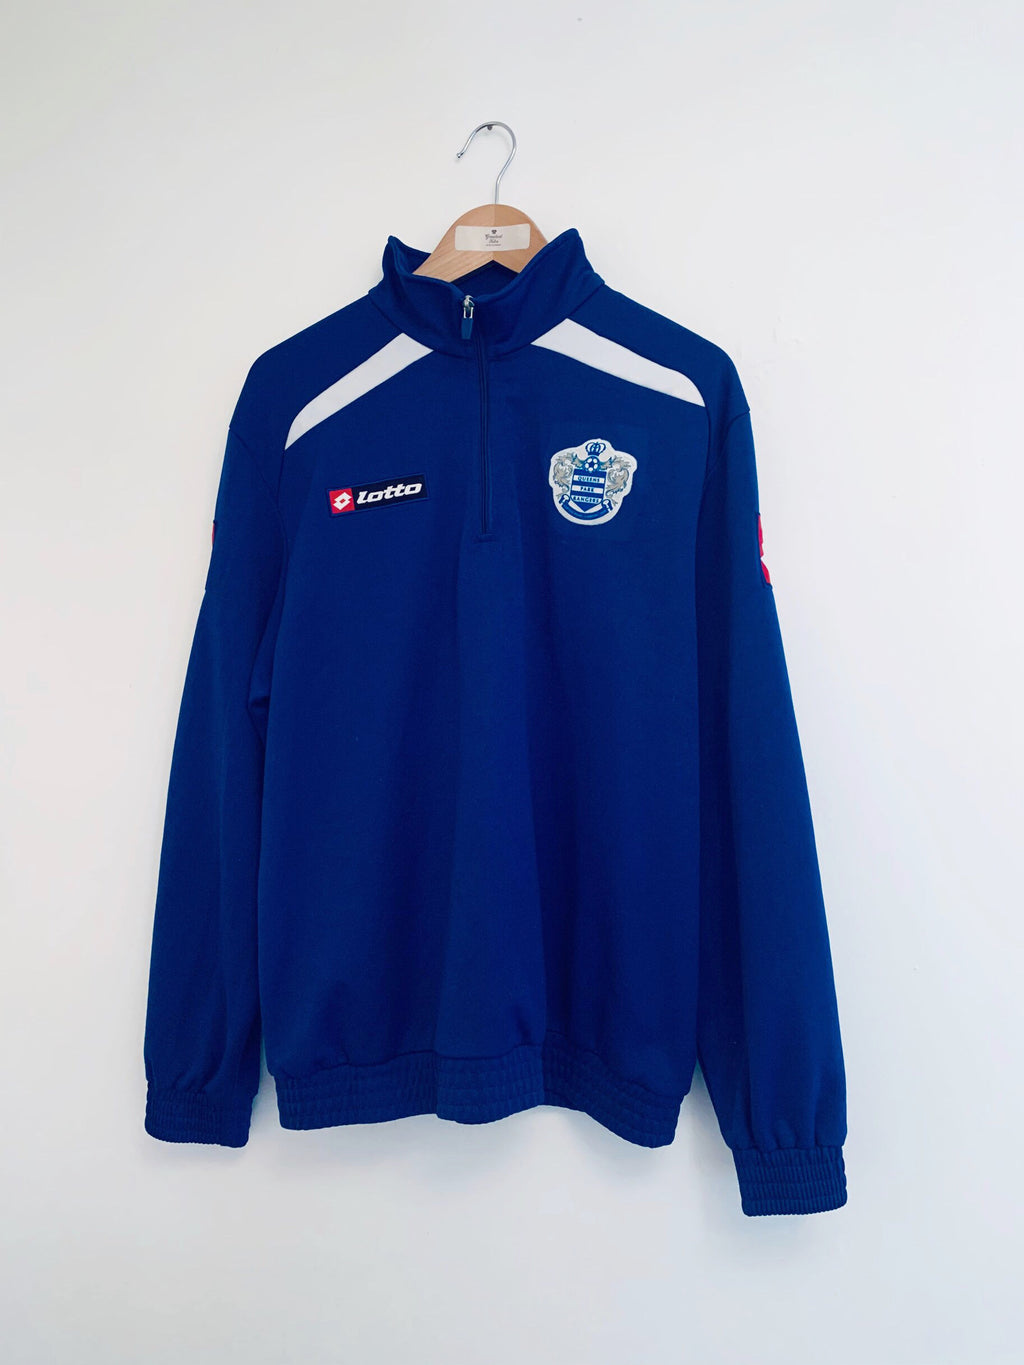 2011/12 QPR 1/4 Zip Training Top (L) 9/10